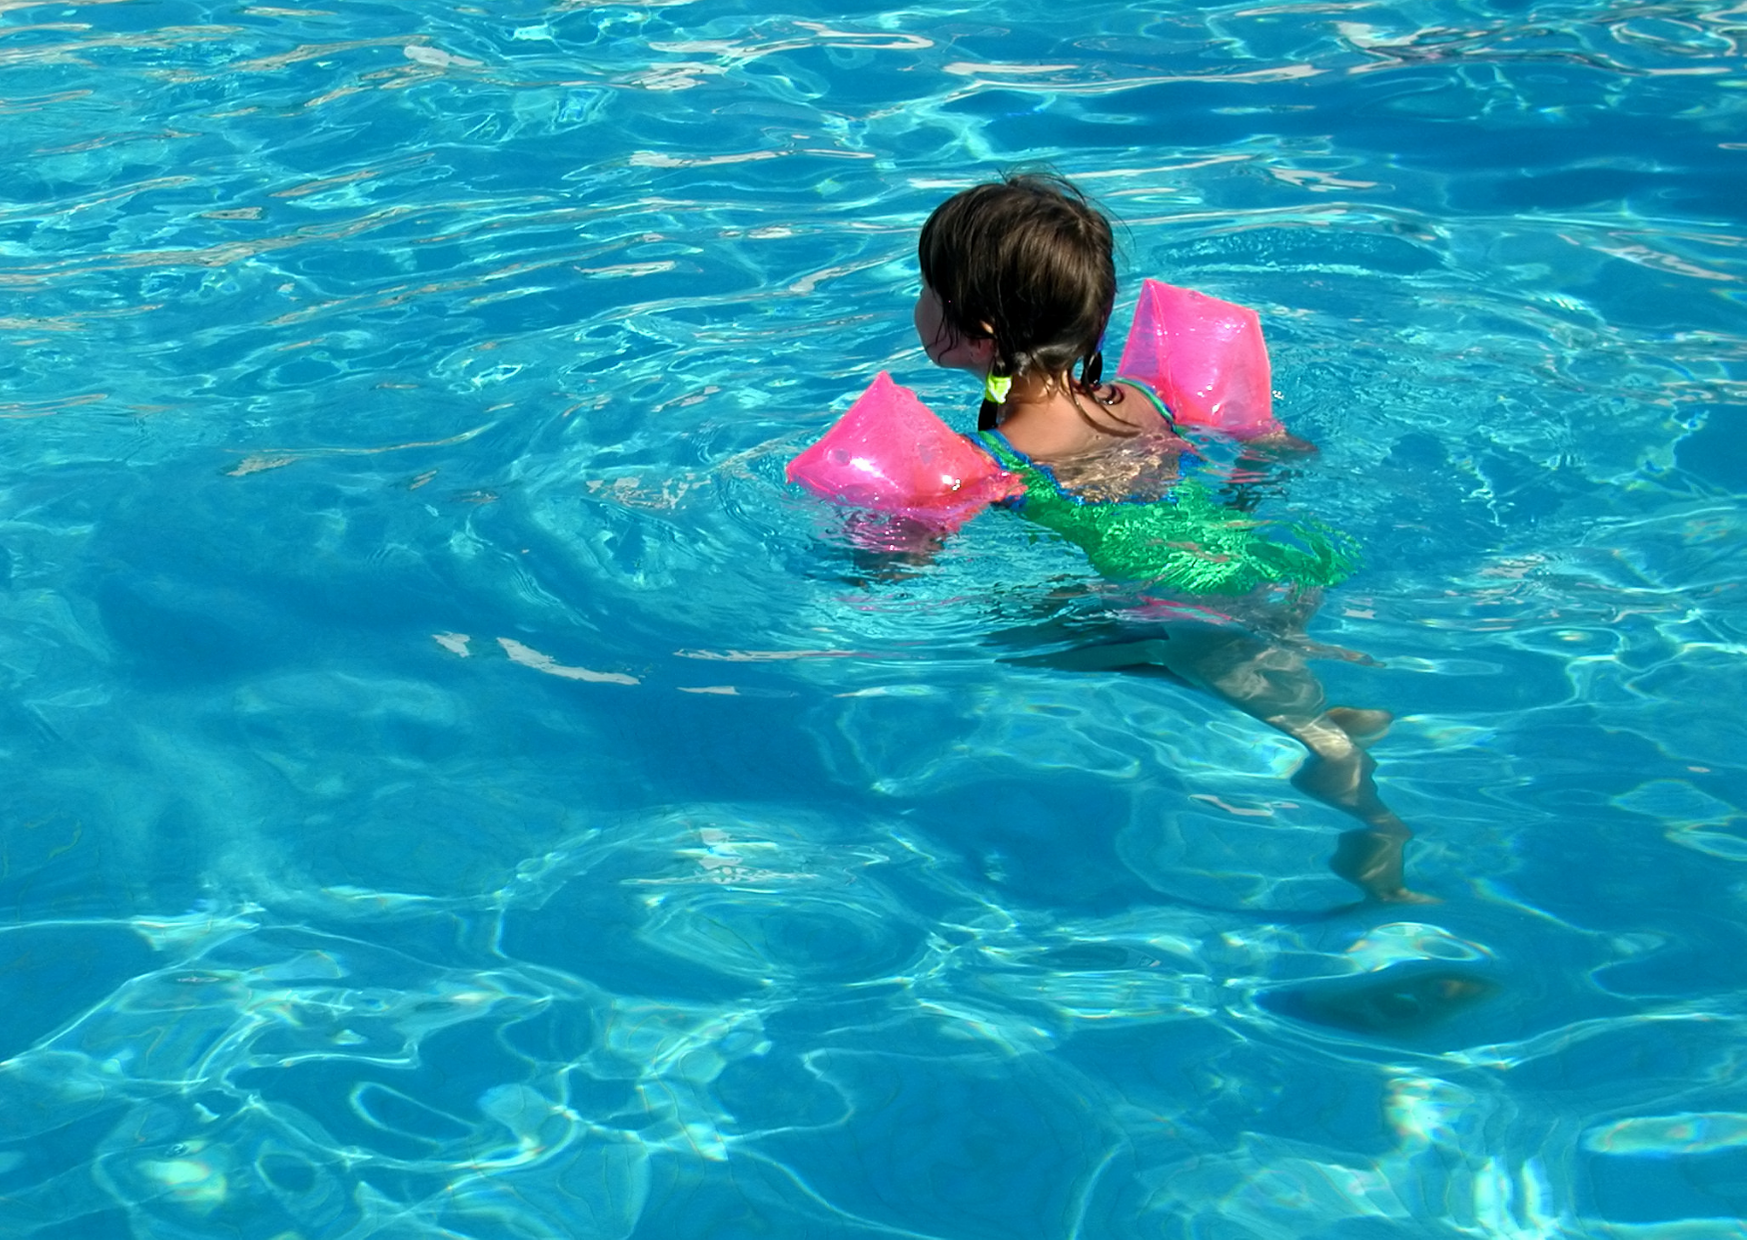 a toddler swimming in the pool alone wearing a floties